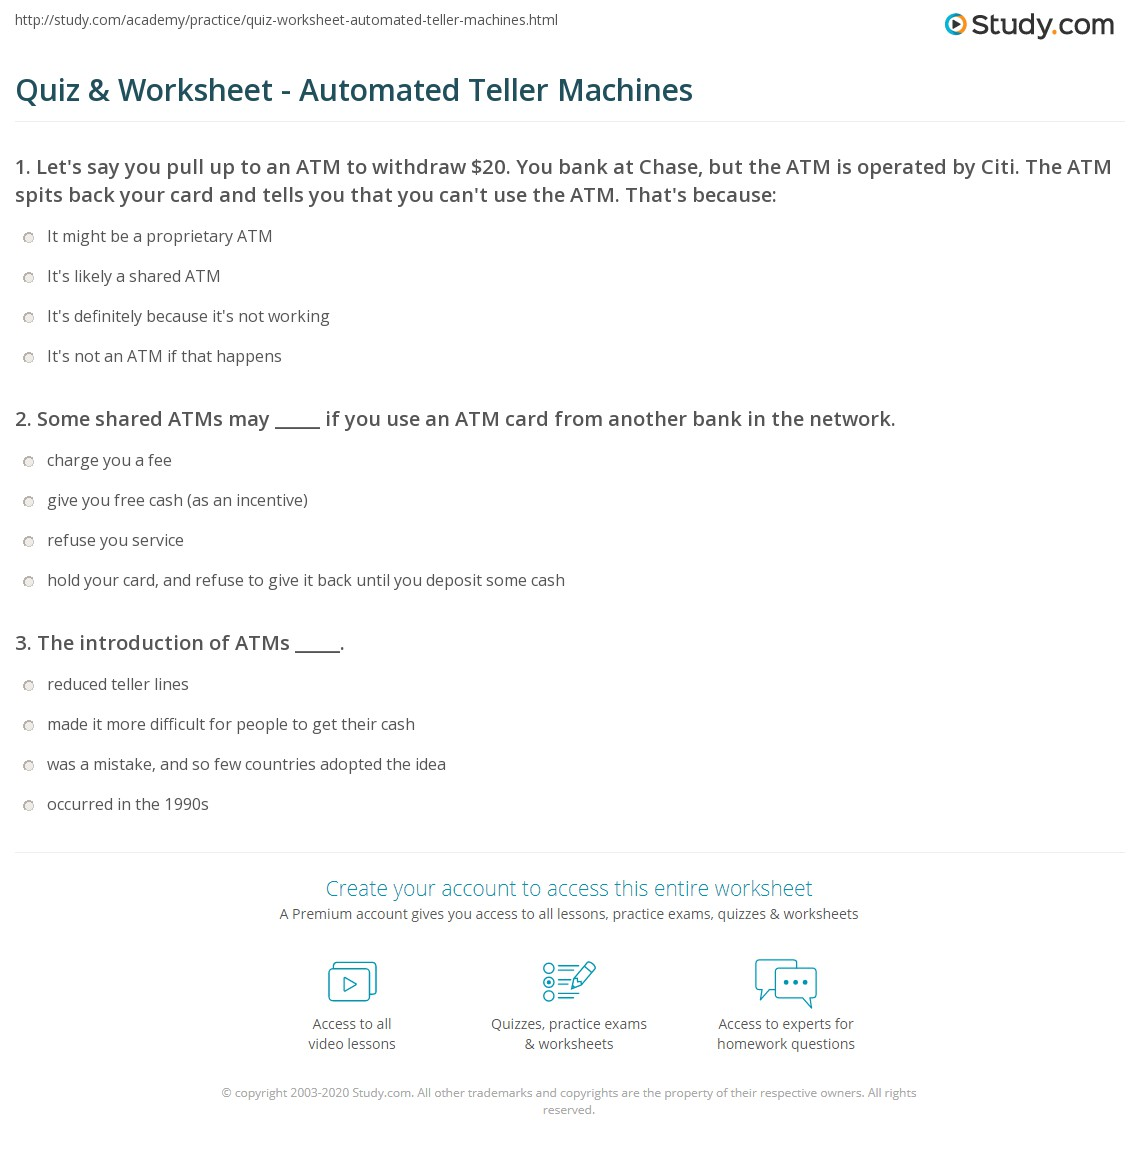 Quiz Worksheet Automated Teller Machines Study